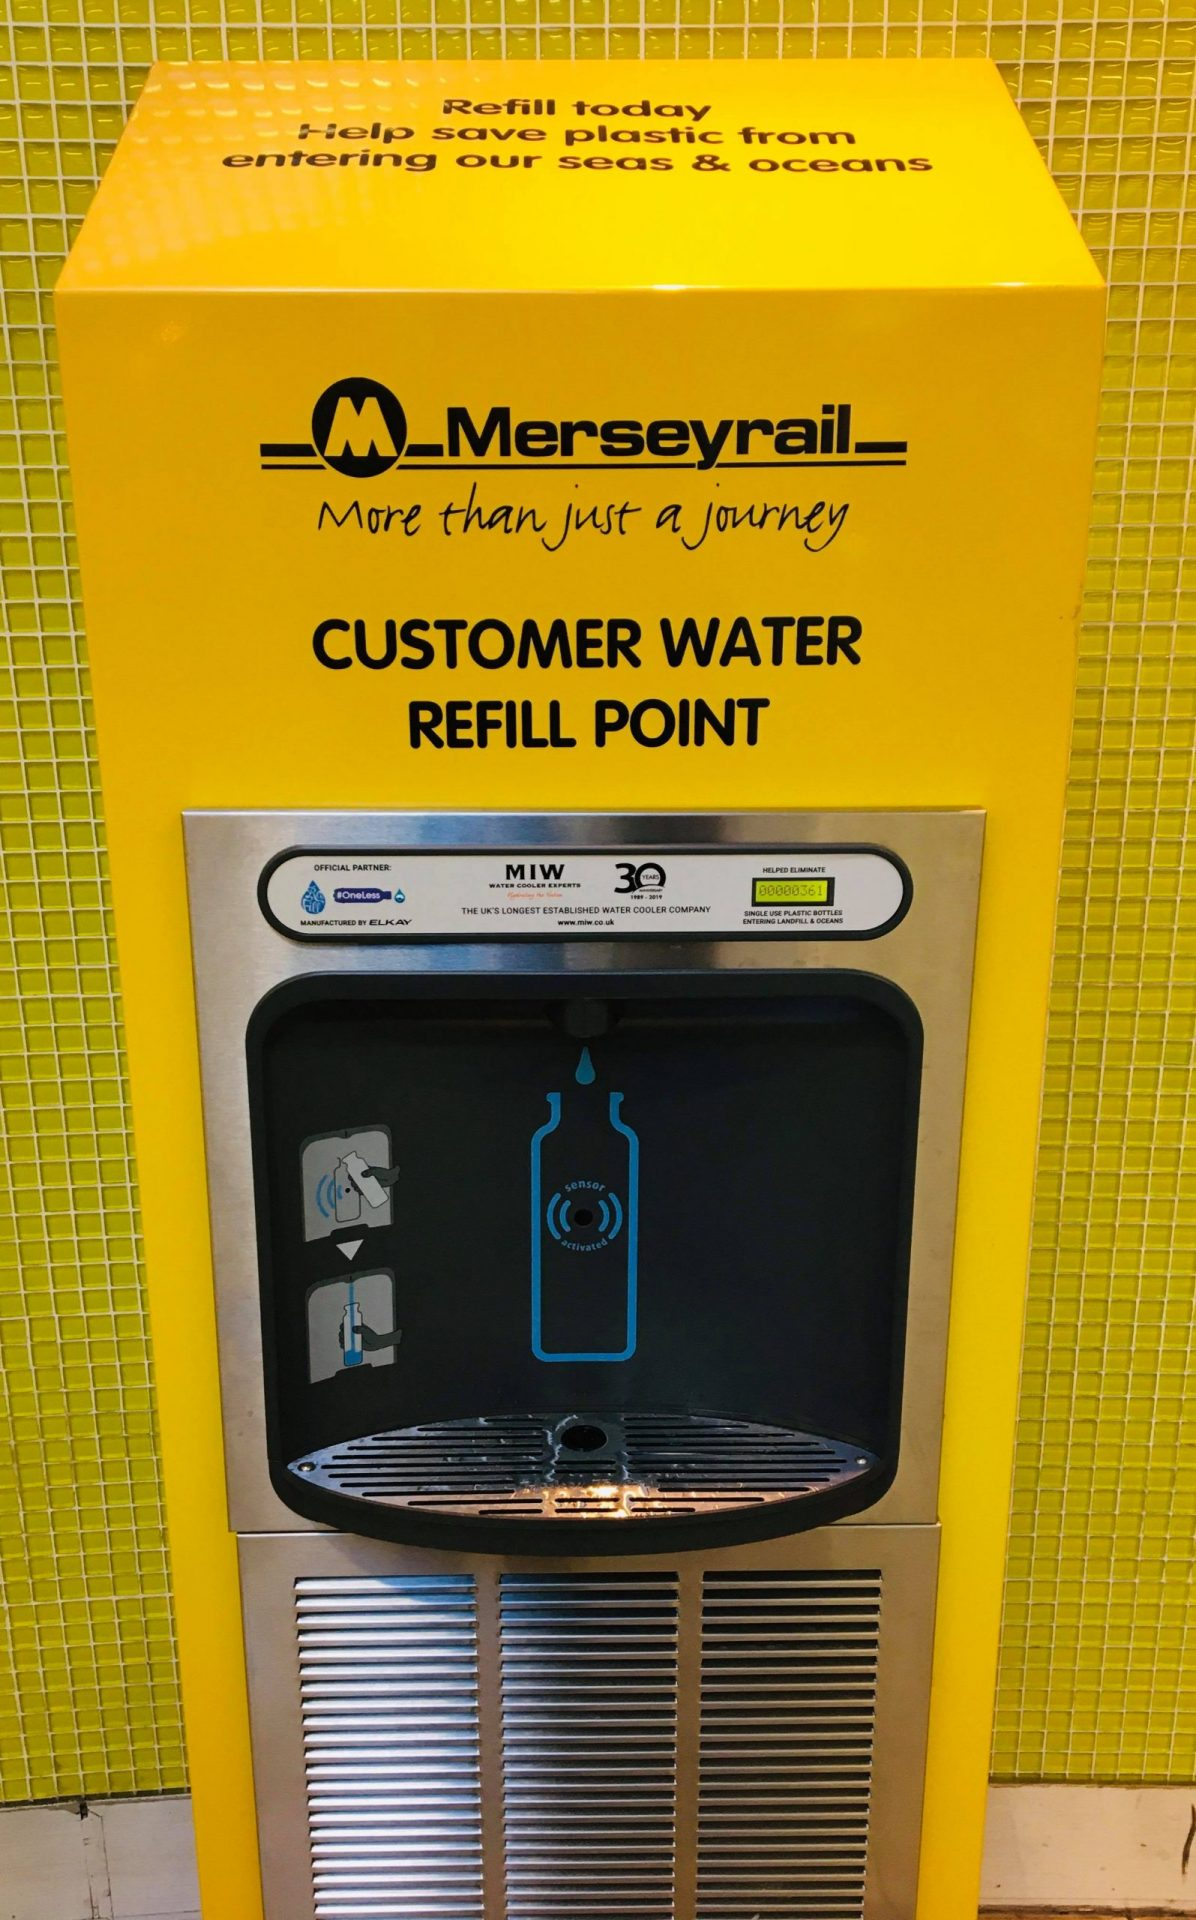 Branded Merseyrail bottle refill station